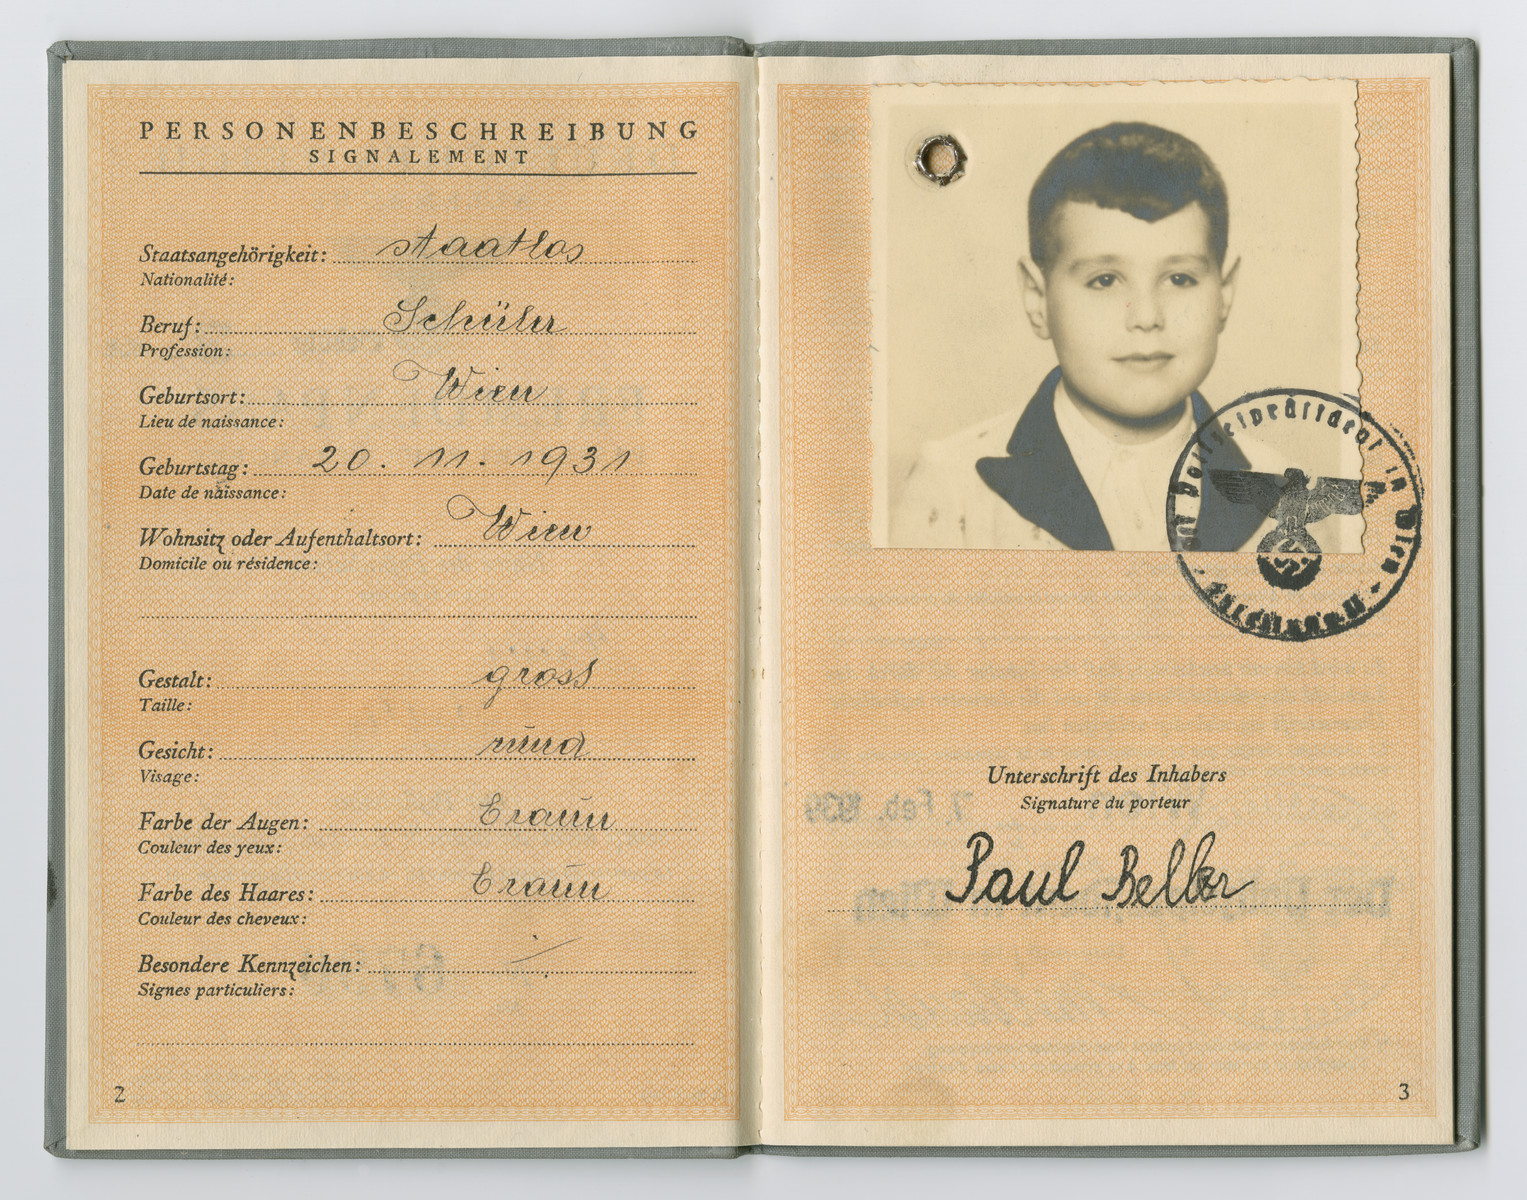 Identification papers issued to Paul Beller stating he was born in Vienna on October 20, 1931 but is officially stateless.